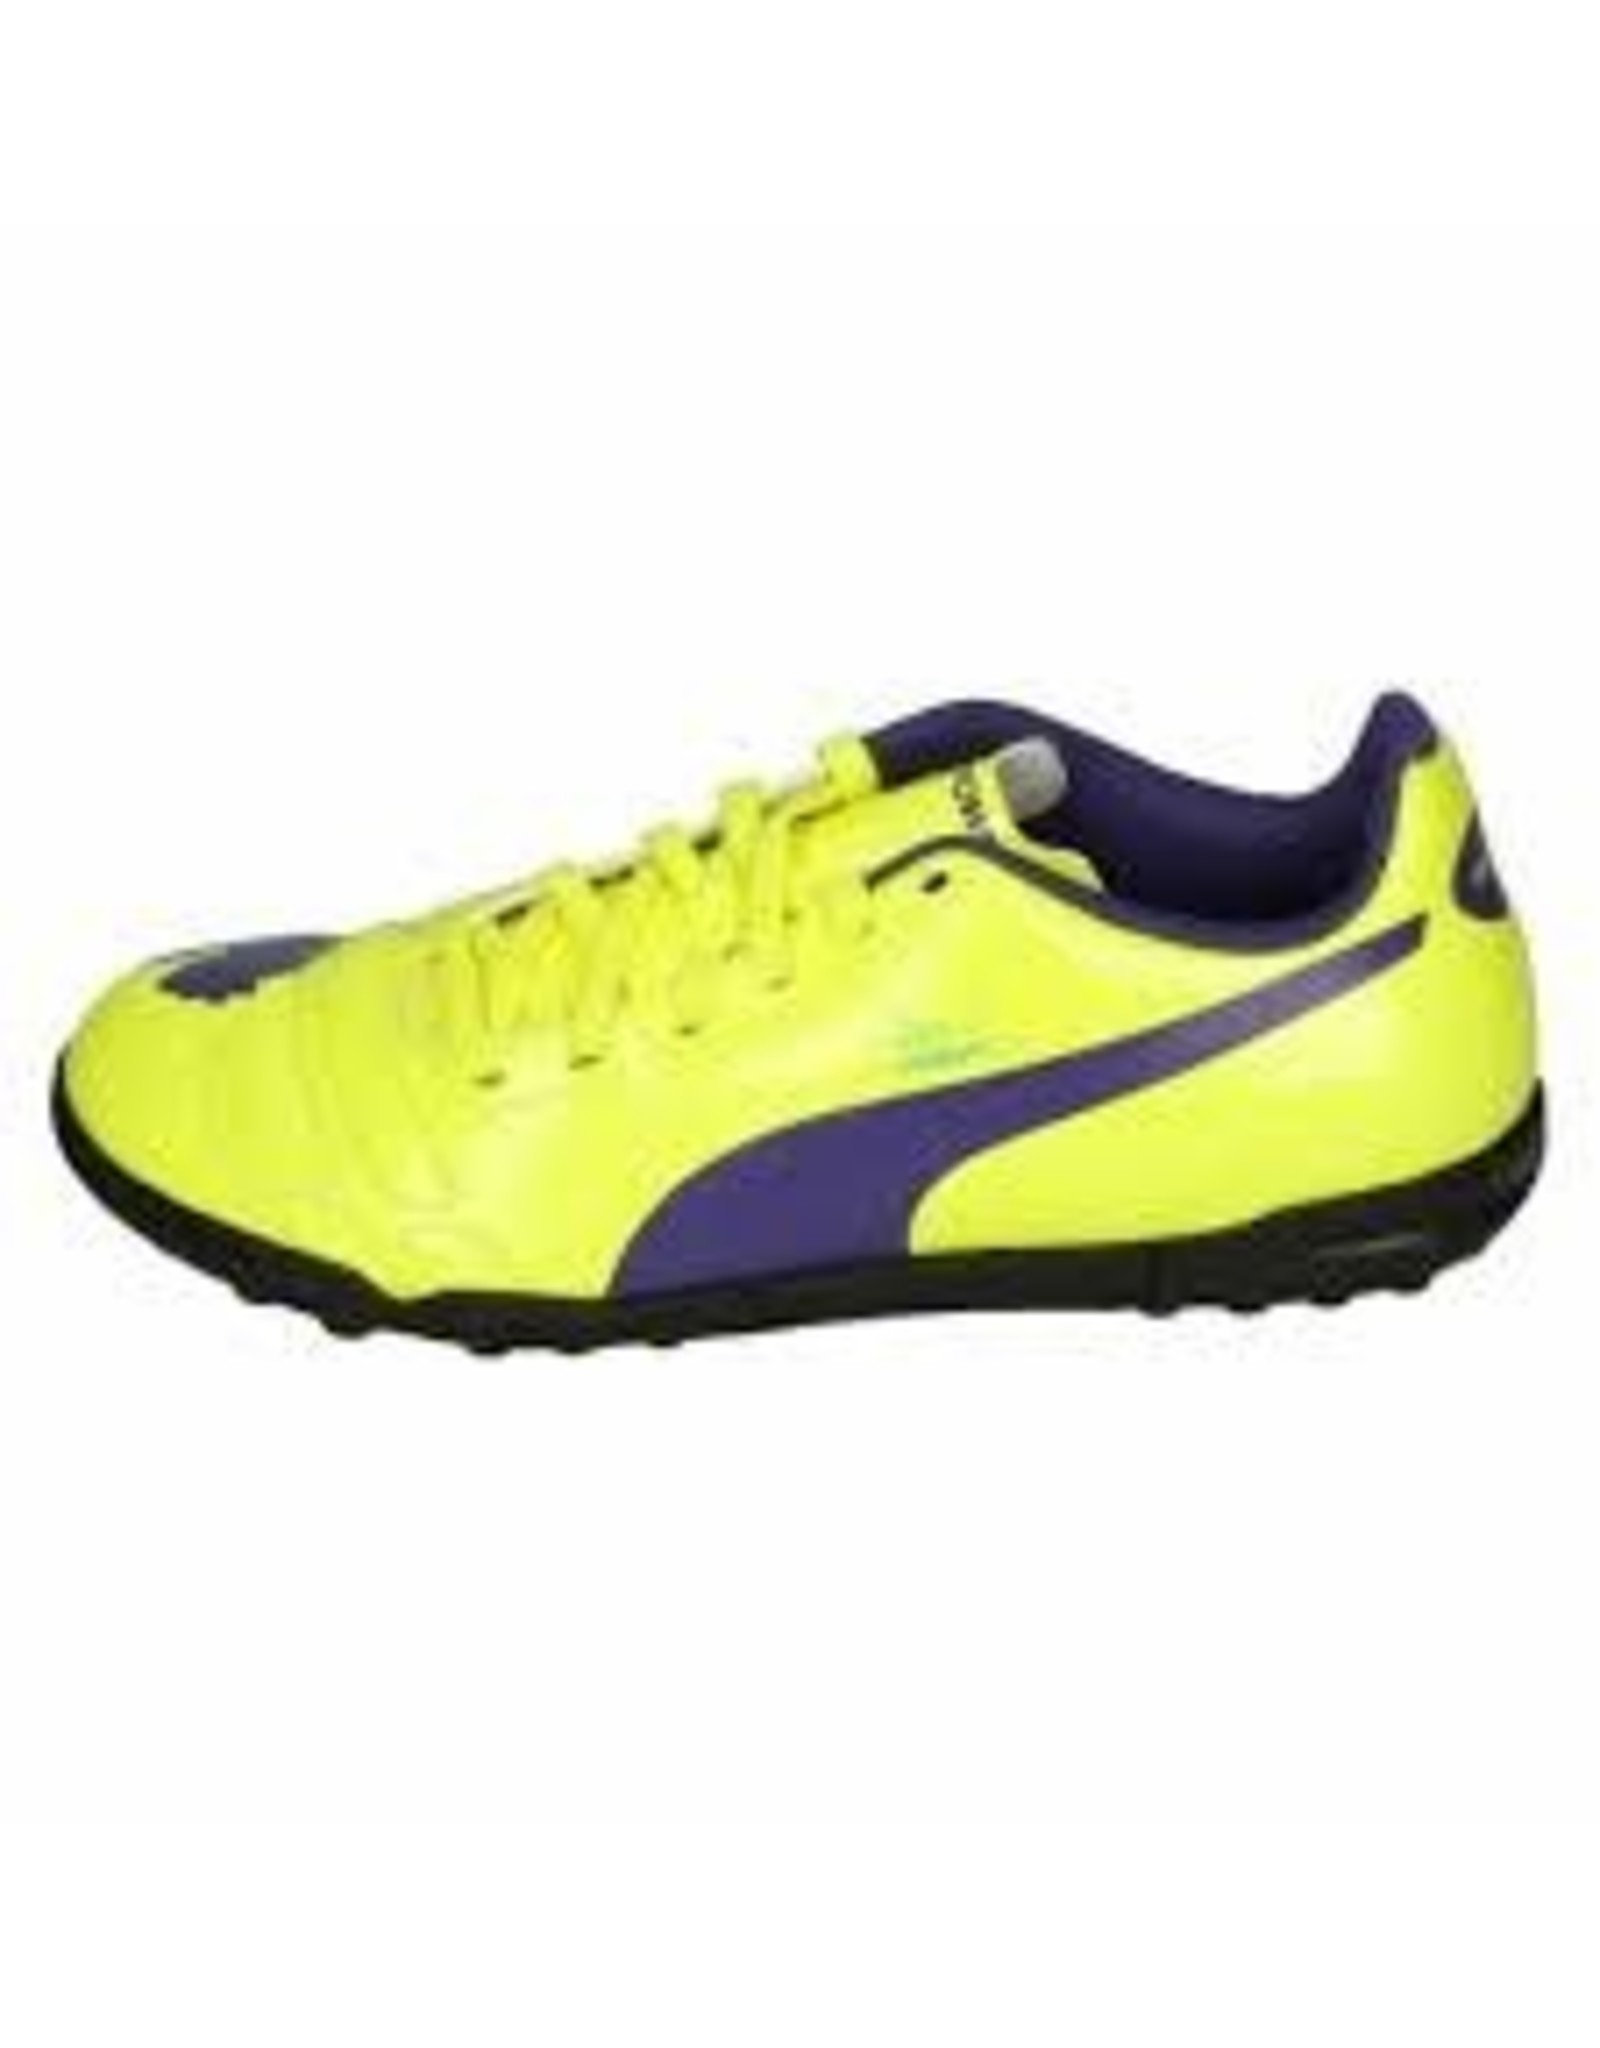 Puma PUMA evoPOWER 4 TT (Fluro Yellow/Violet/Blue)